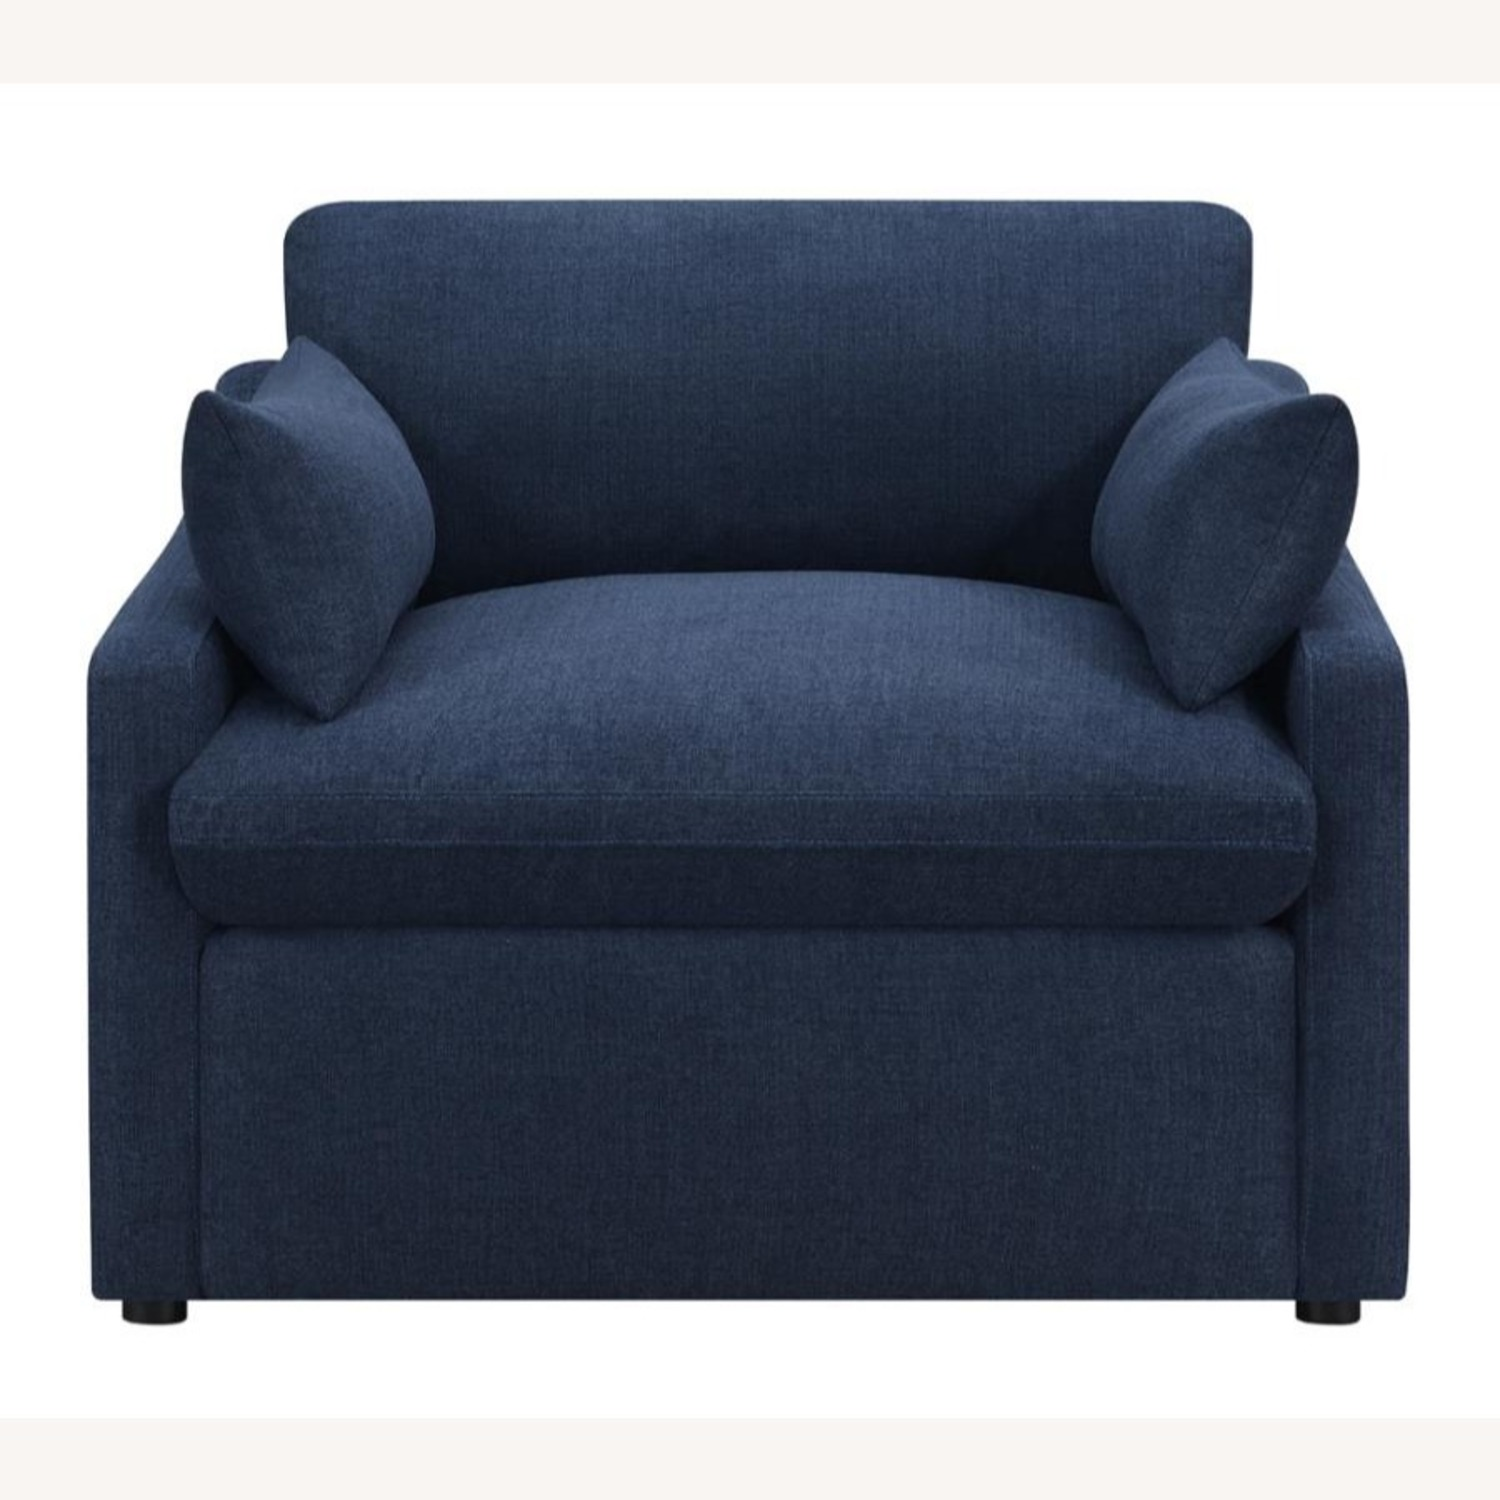 Power Recliner In Linen-Like Midnight Blue Fabric - image-1